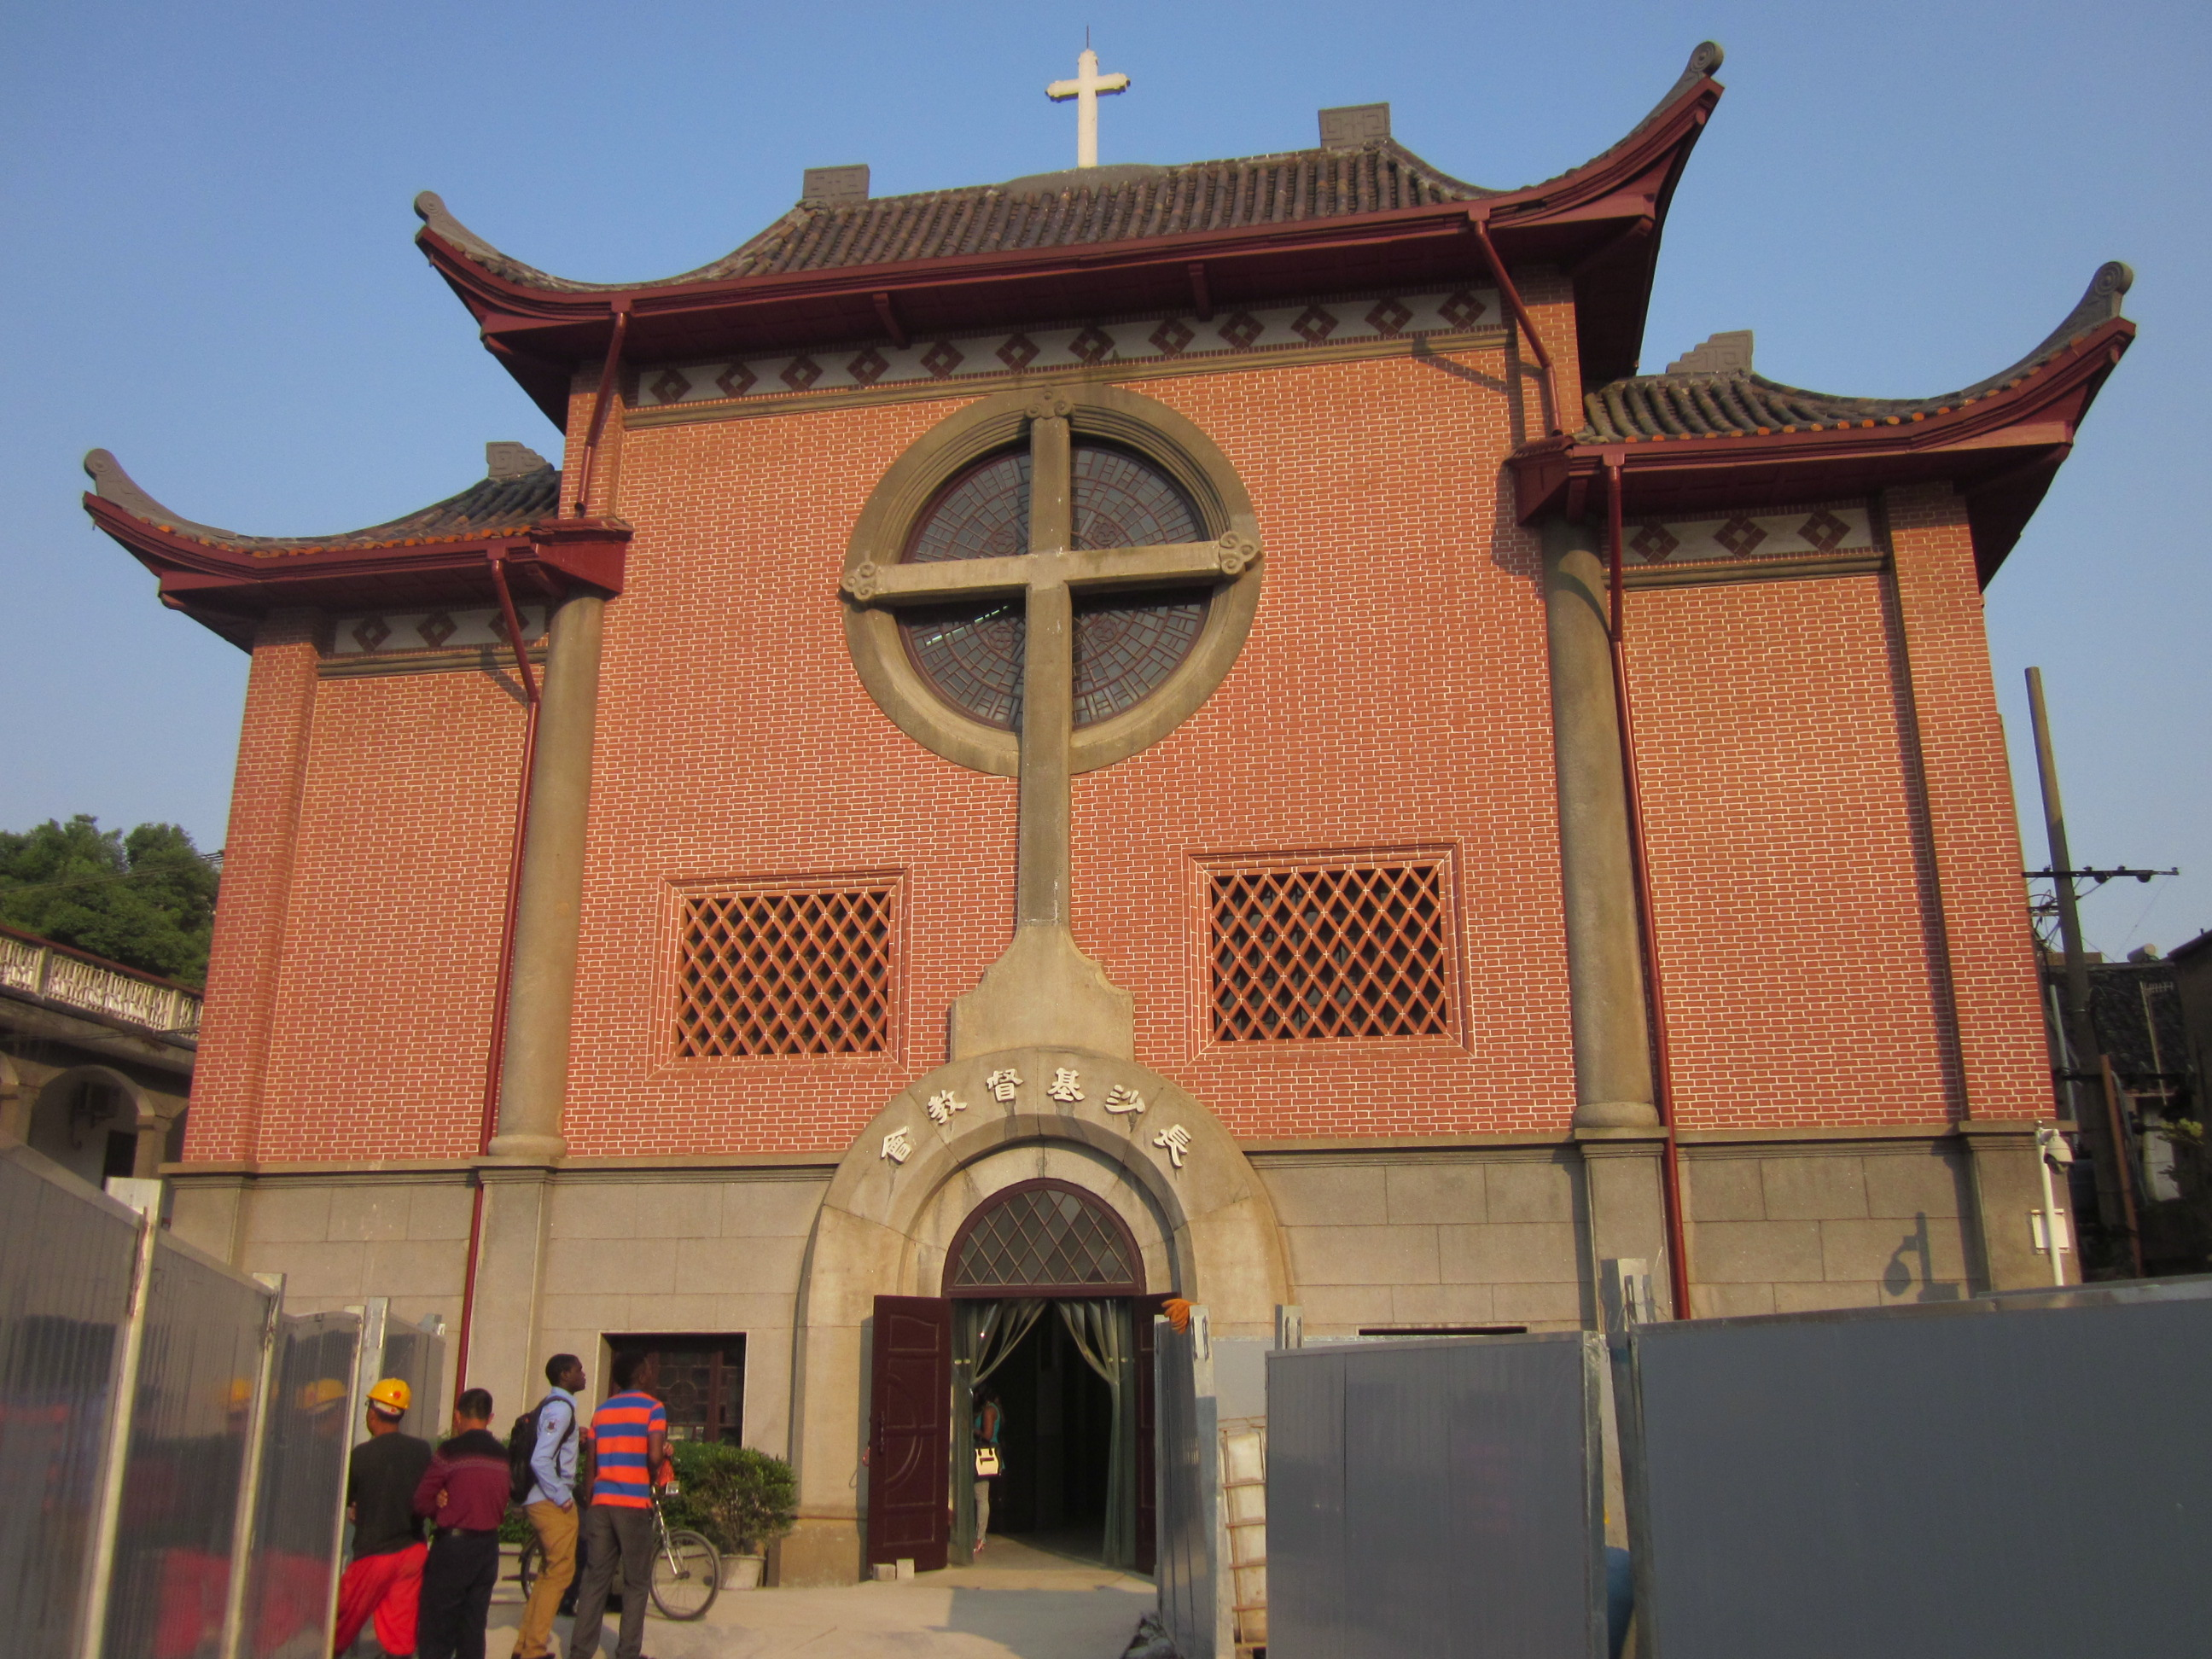 China Denies African International Students Access to Worship Centers